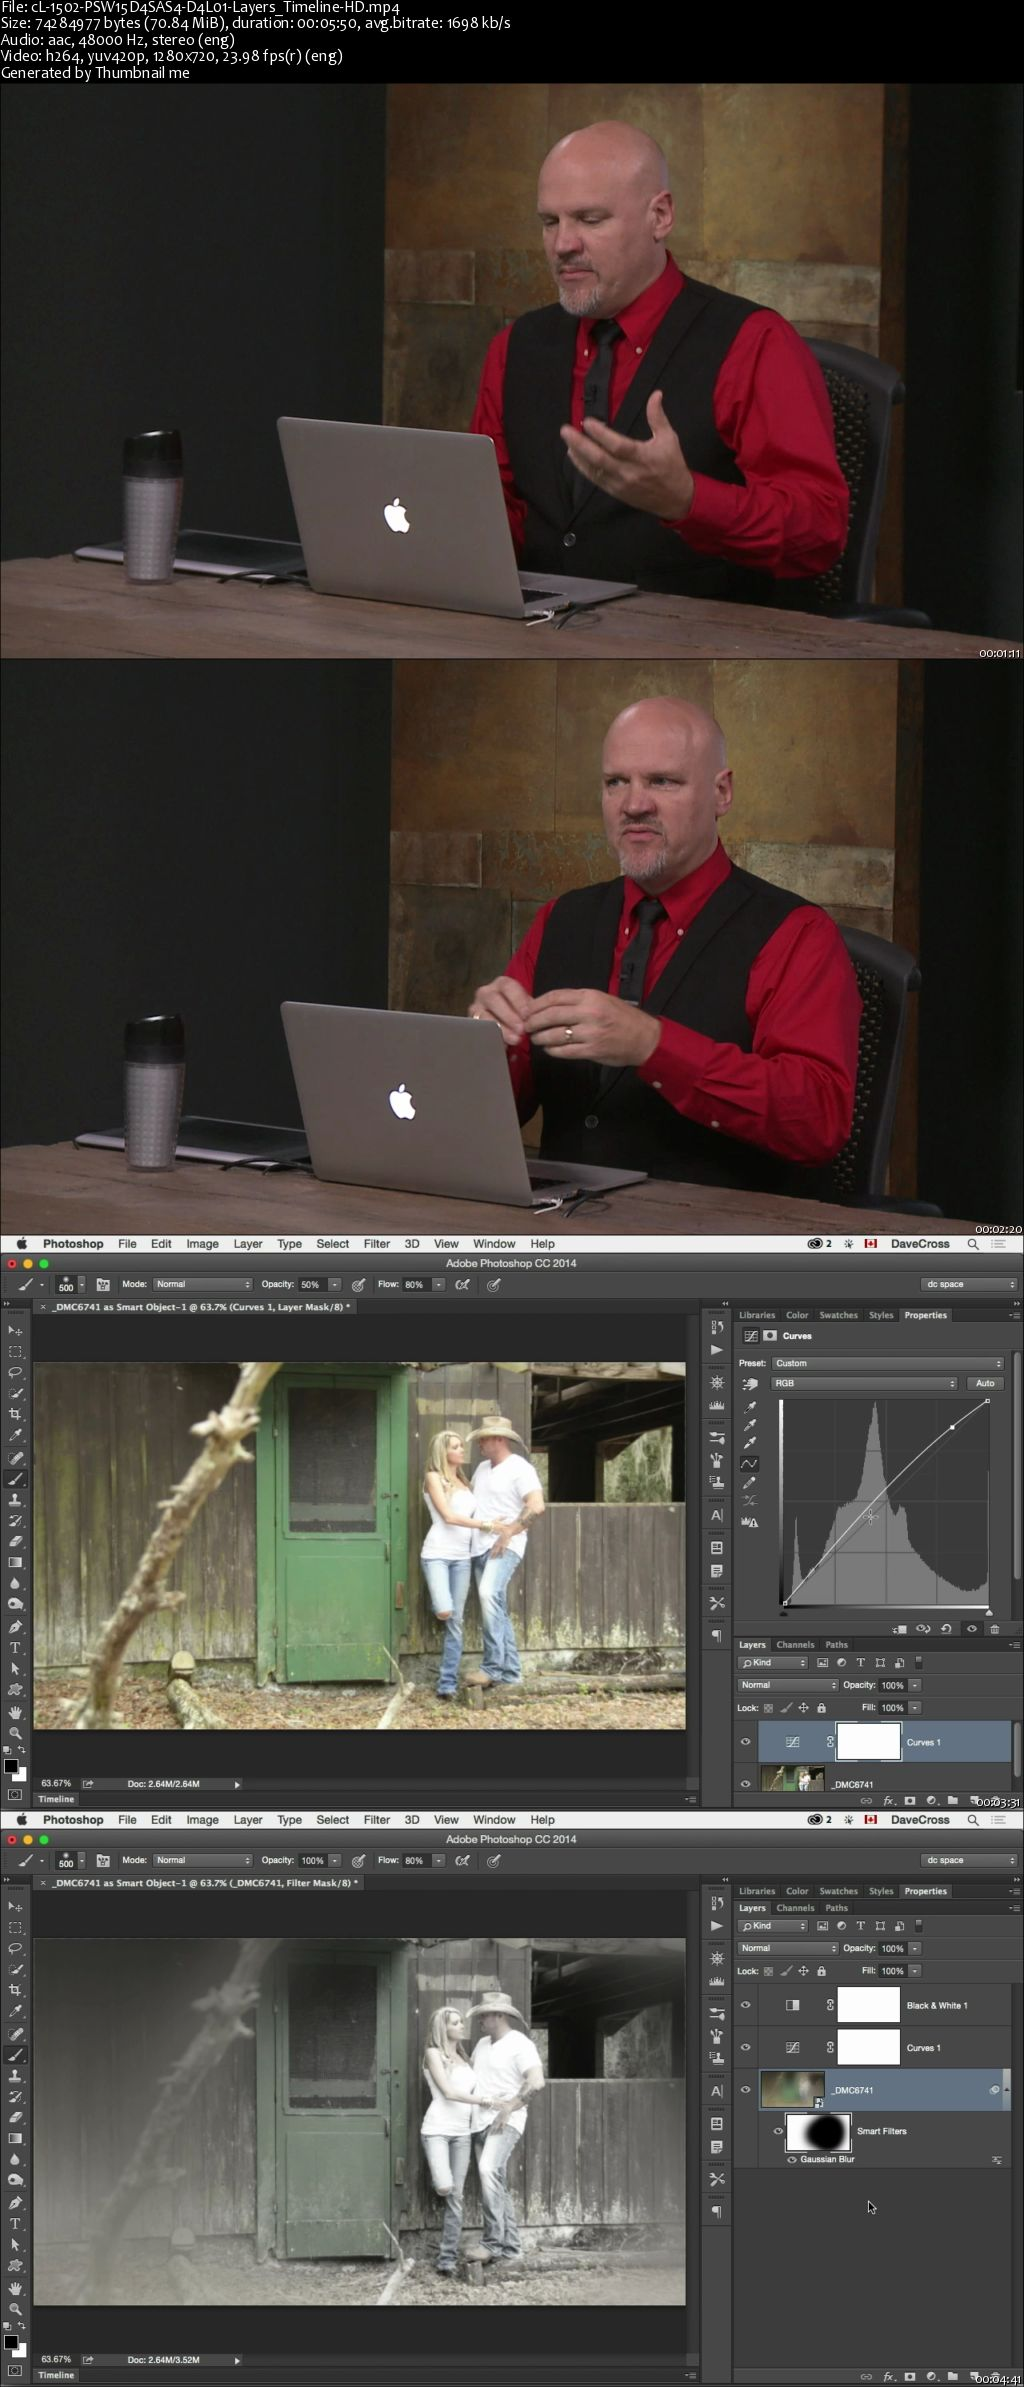 Creating and Editing Video in Photoshop